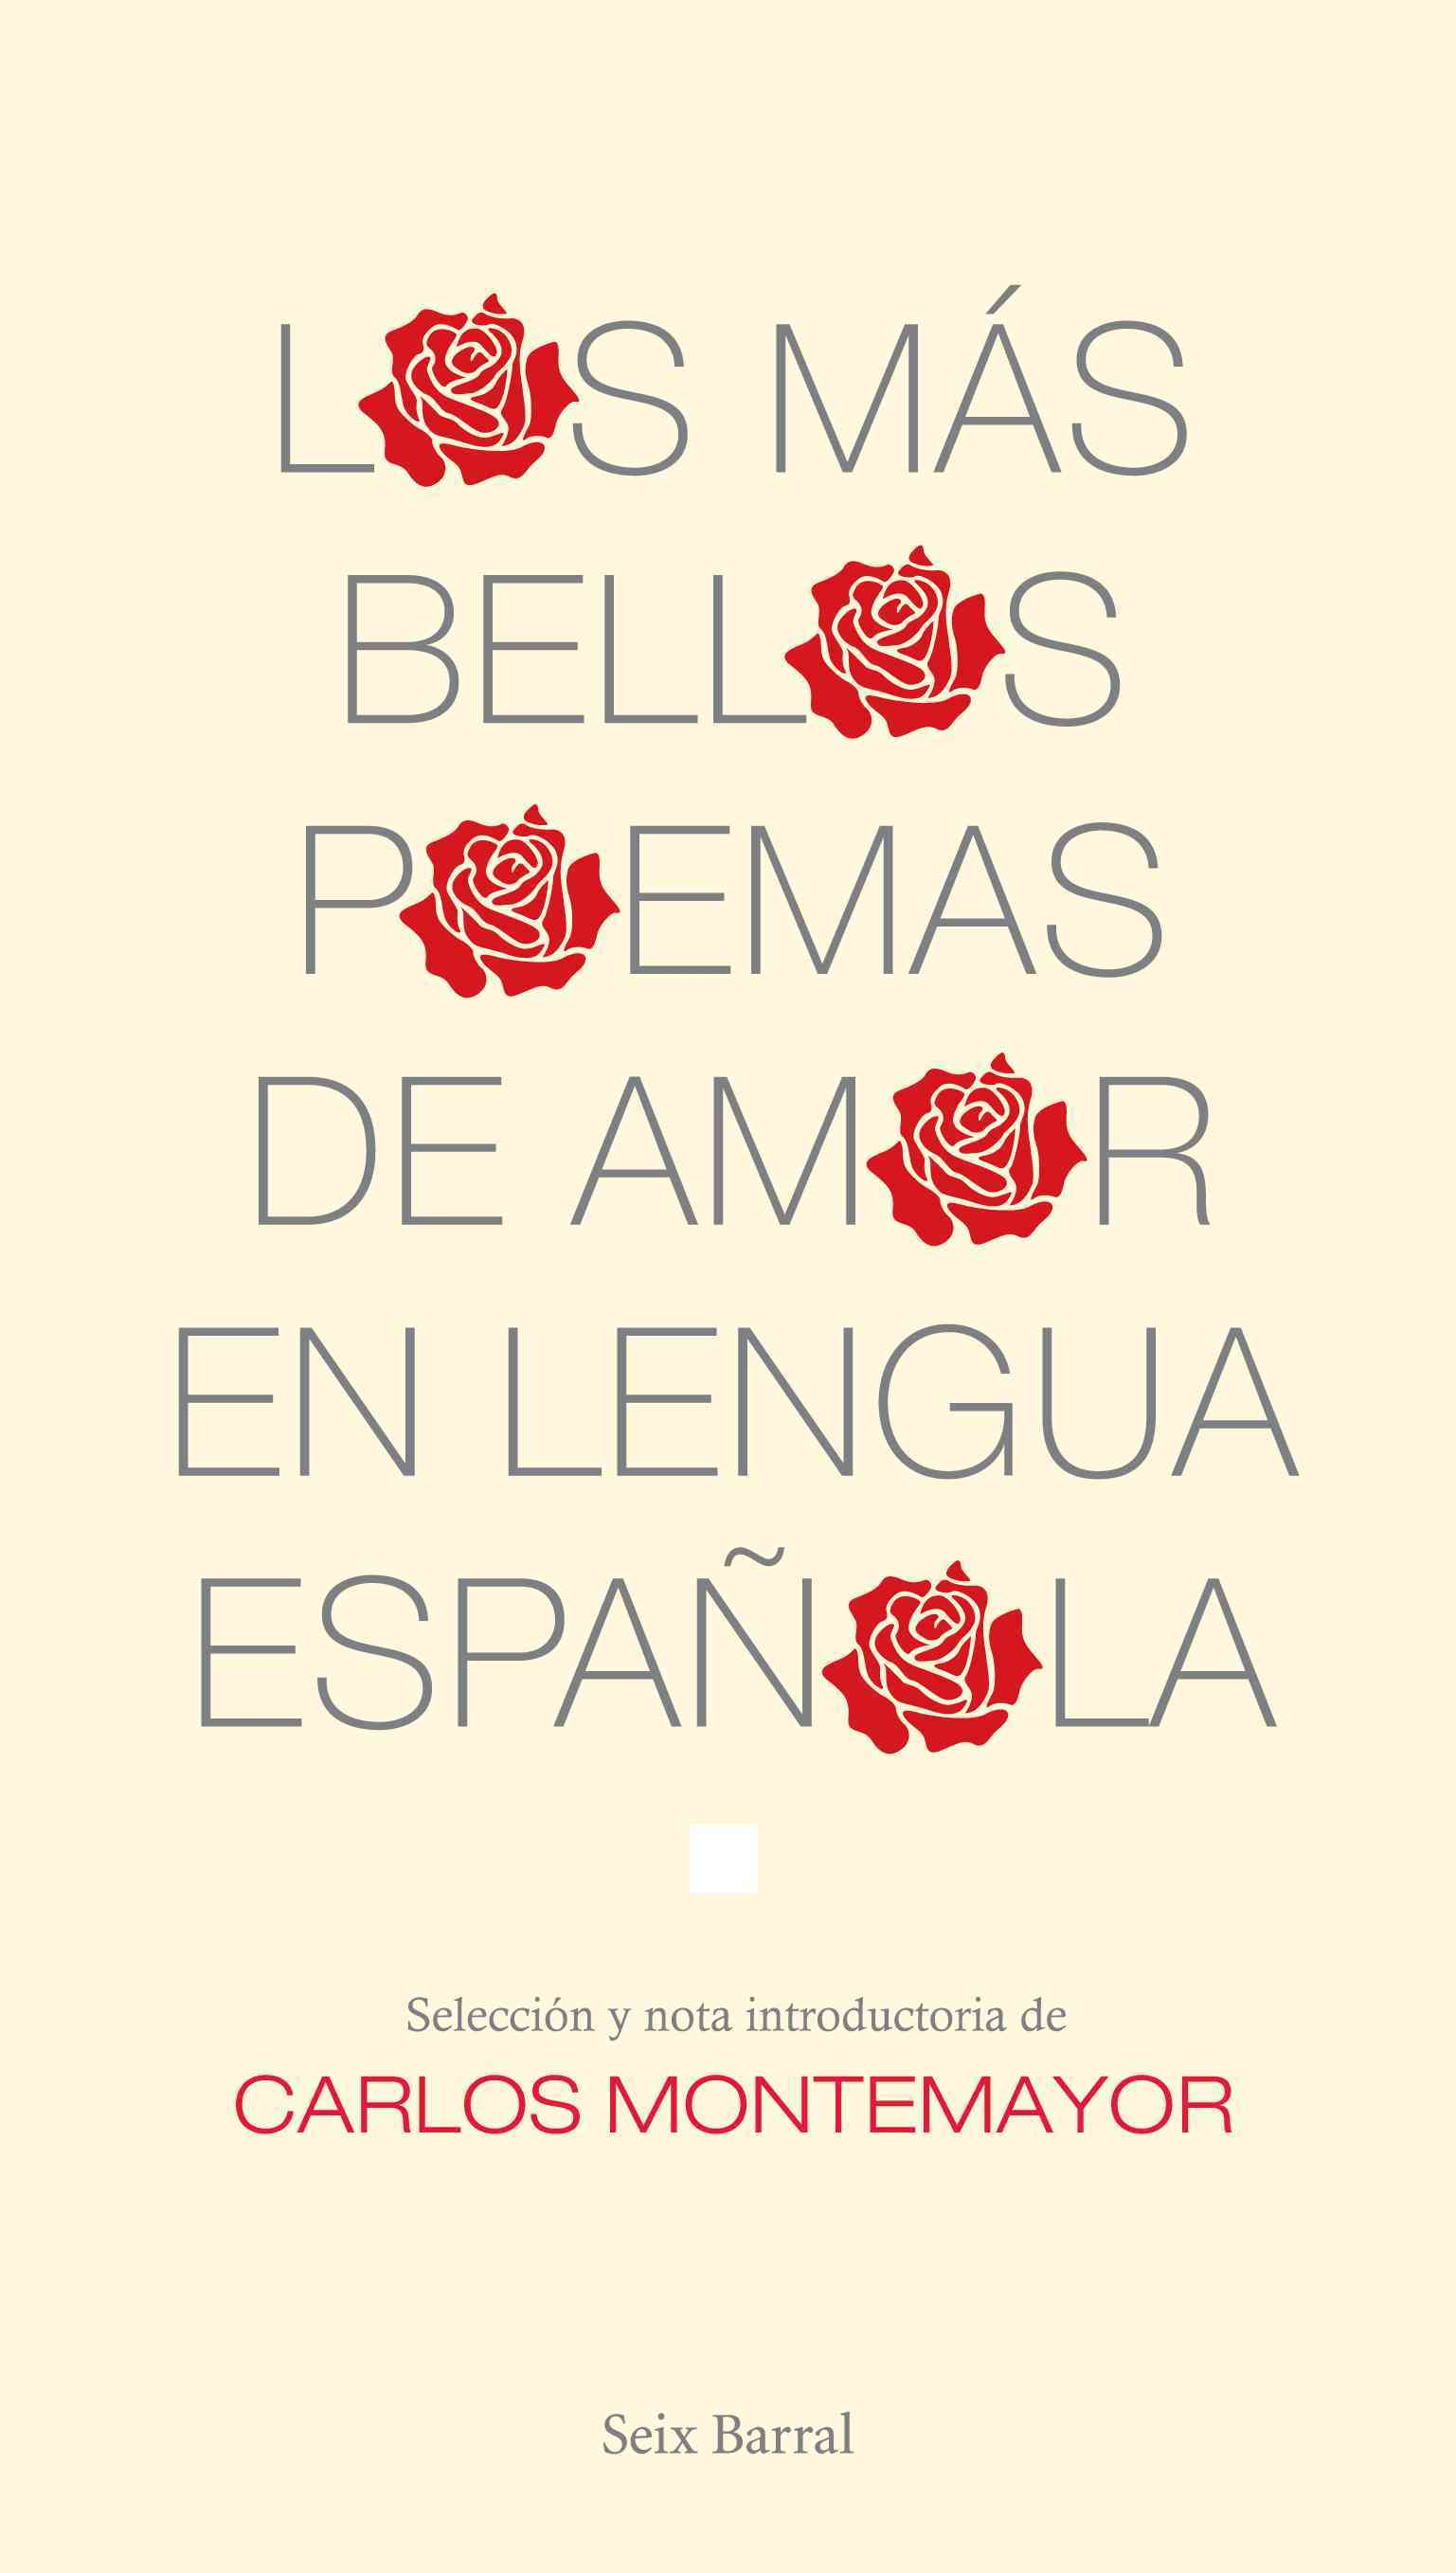 Spanish Love Quotes And Poems For Him Her: Love Poems For Him Her Your Boyfriend A Girlfriend Husband